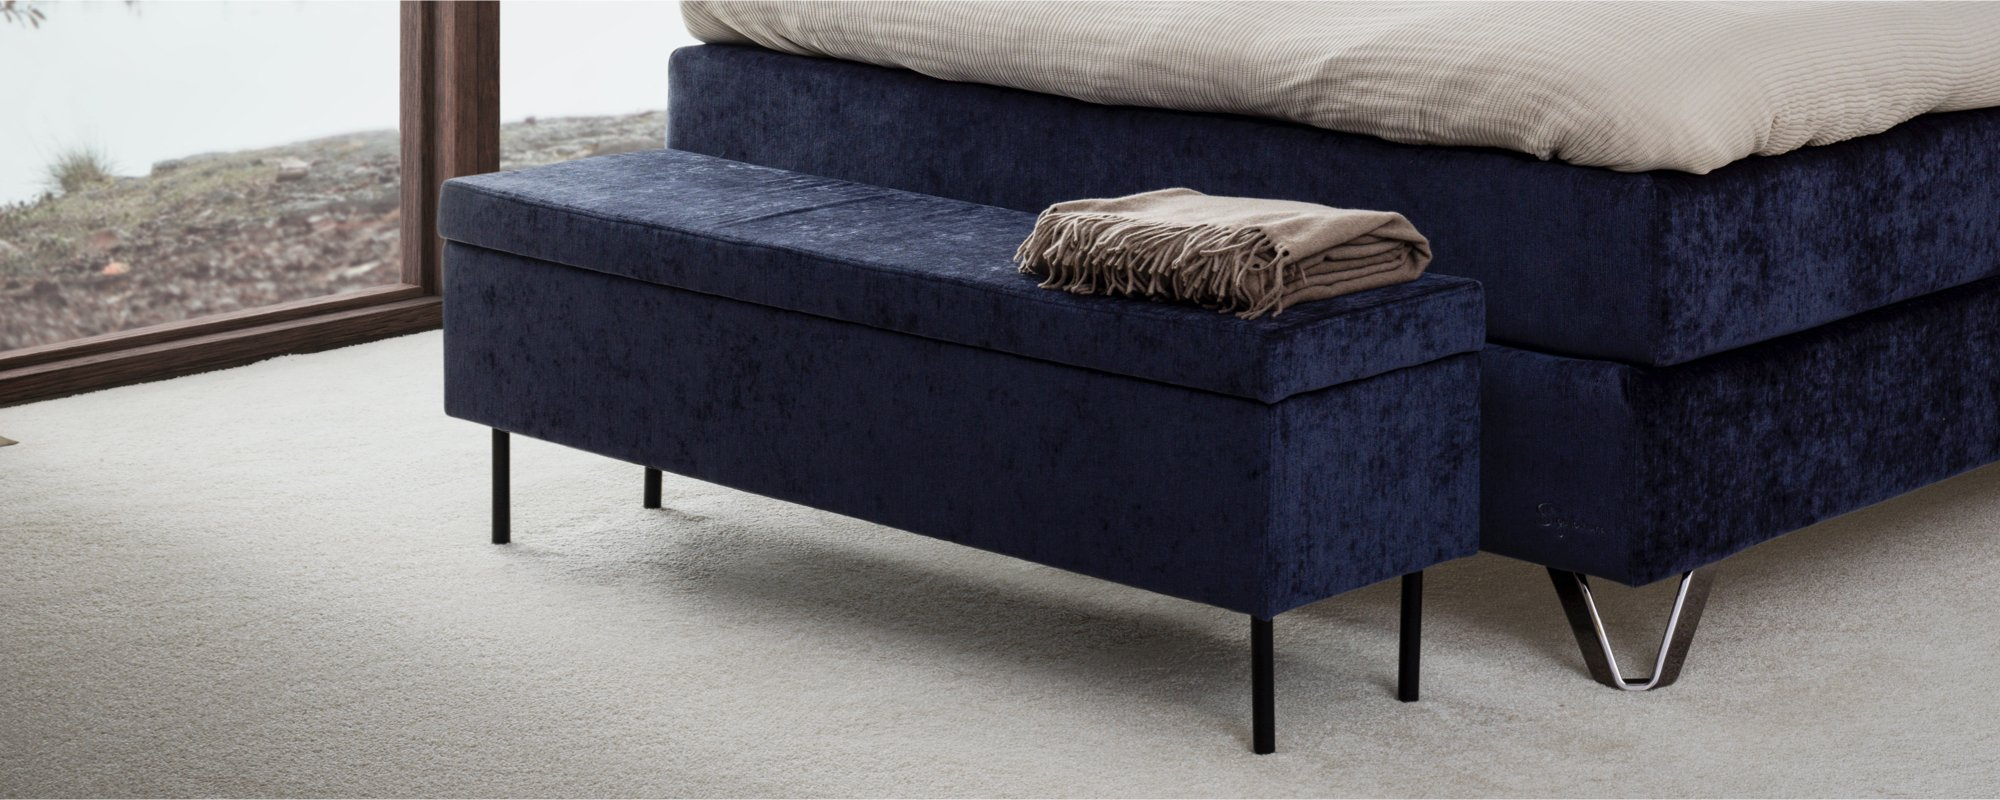 Add style to your bedroom with our Saturn Ottoman